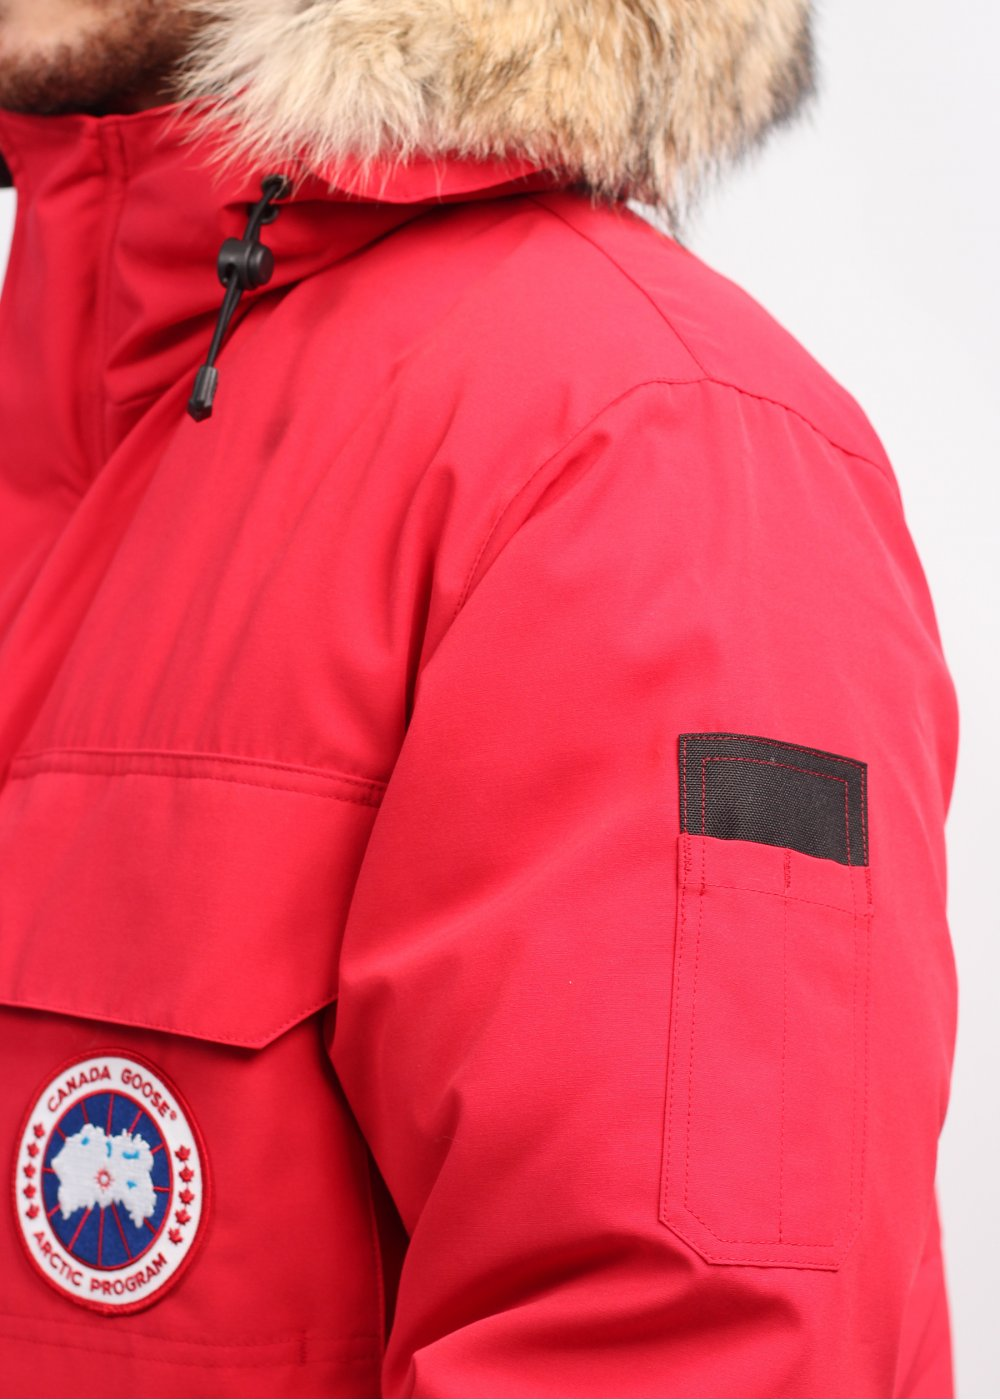 ad029b59f34 Canada Goose Expedition Parka - Red